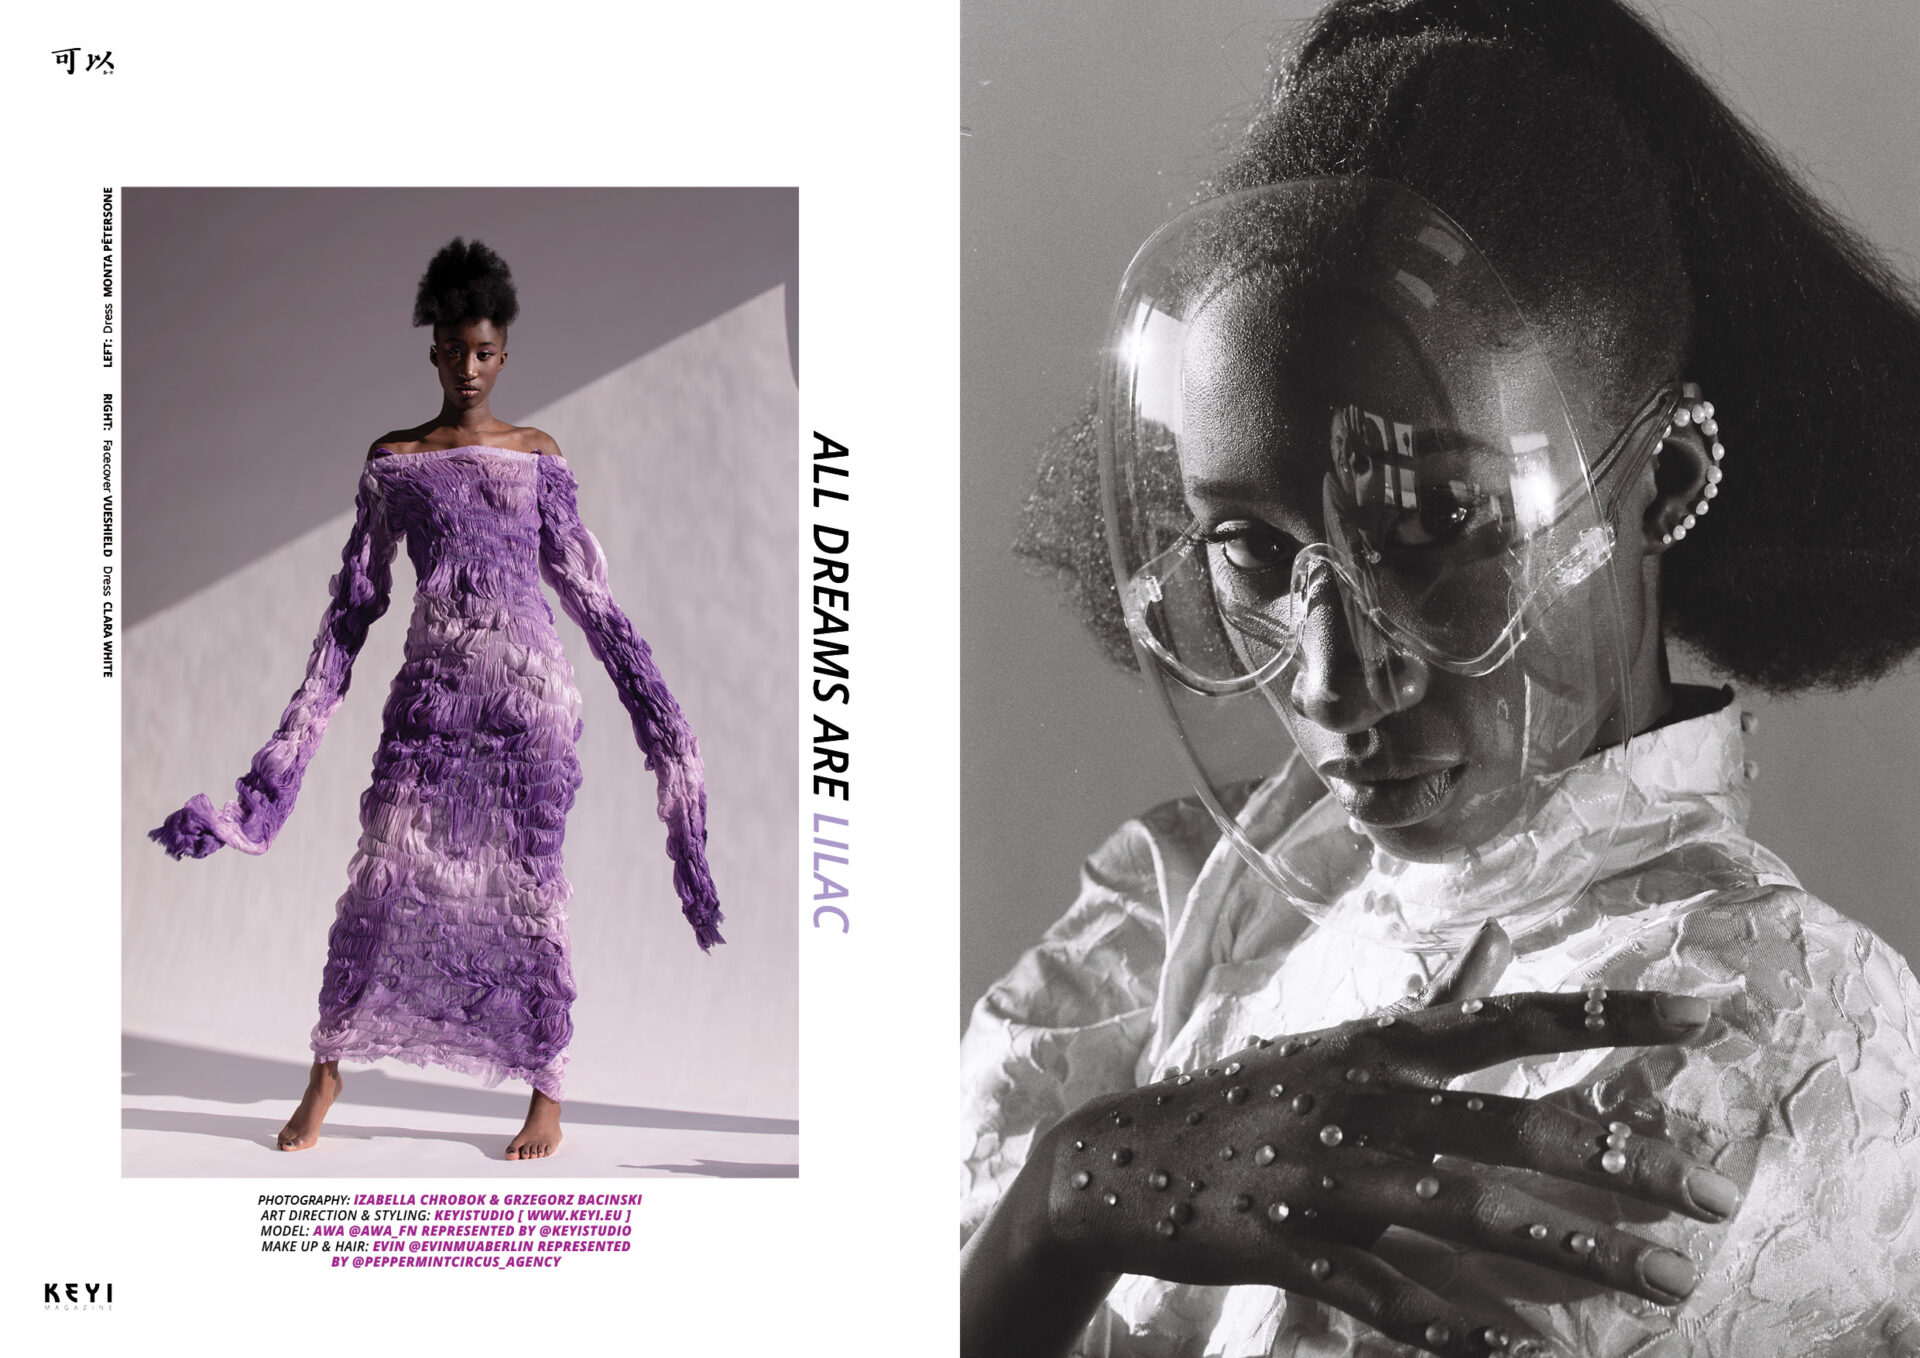 """""""All dreams are lilac"""" by Izabella Chrobok & Grzegorz Bacinski with Awa. Make up by Evinrepresented byPeppermintcircus Agency. Styled by KEYI Studio"""